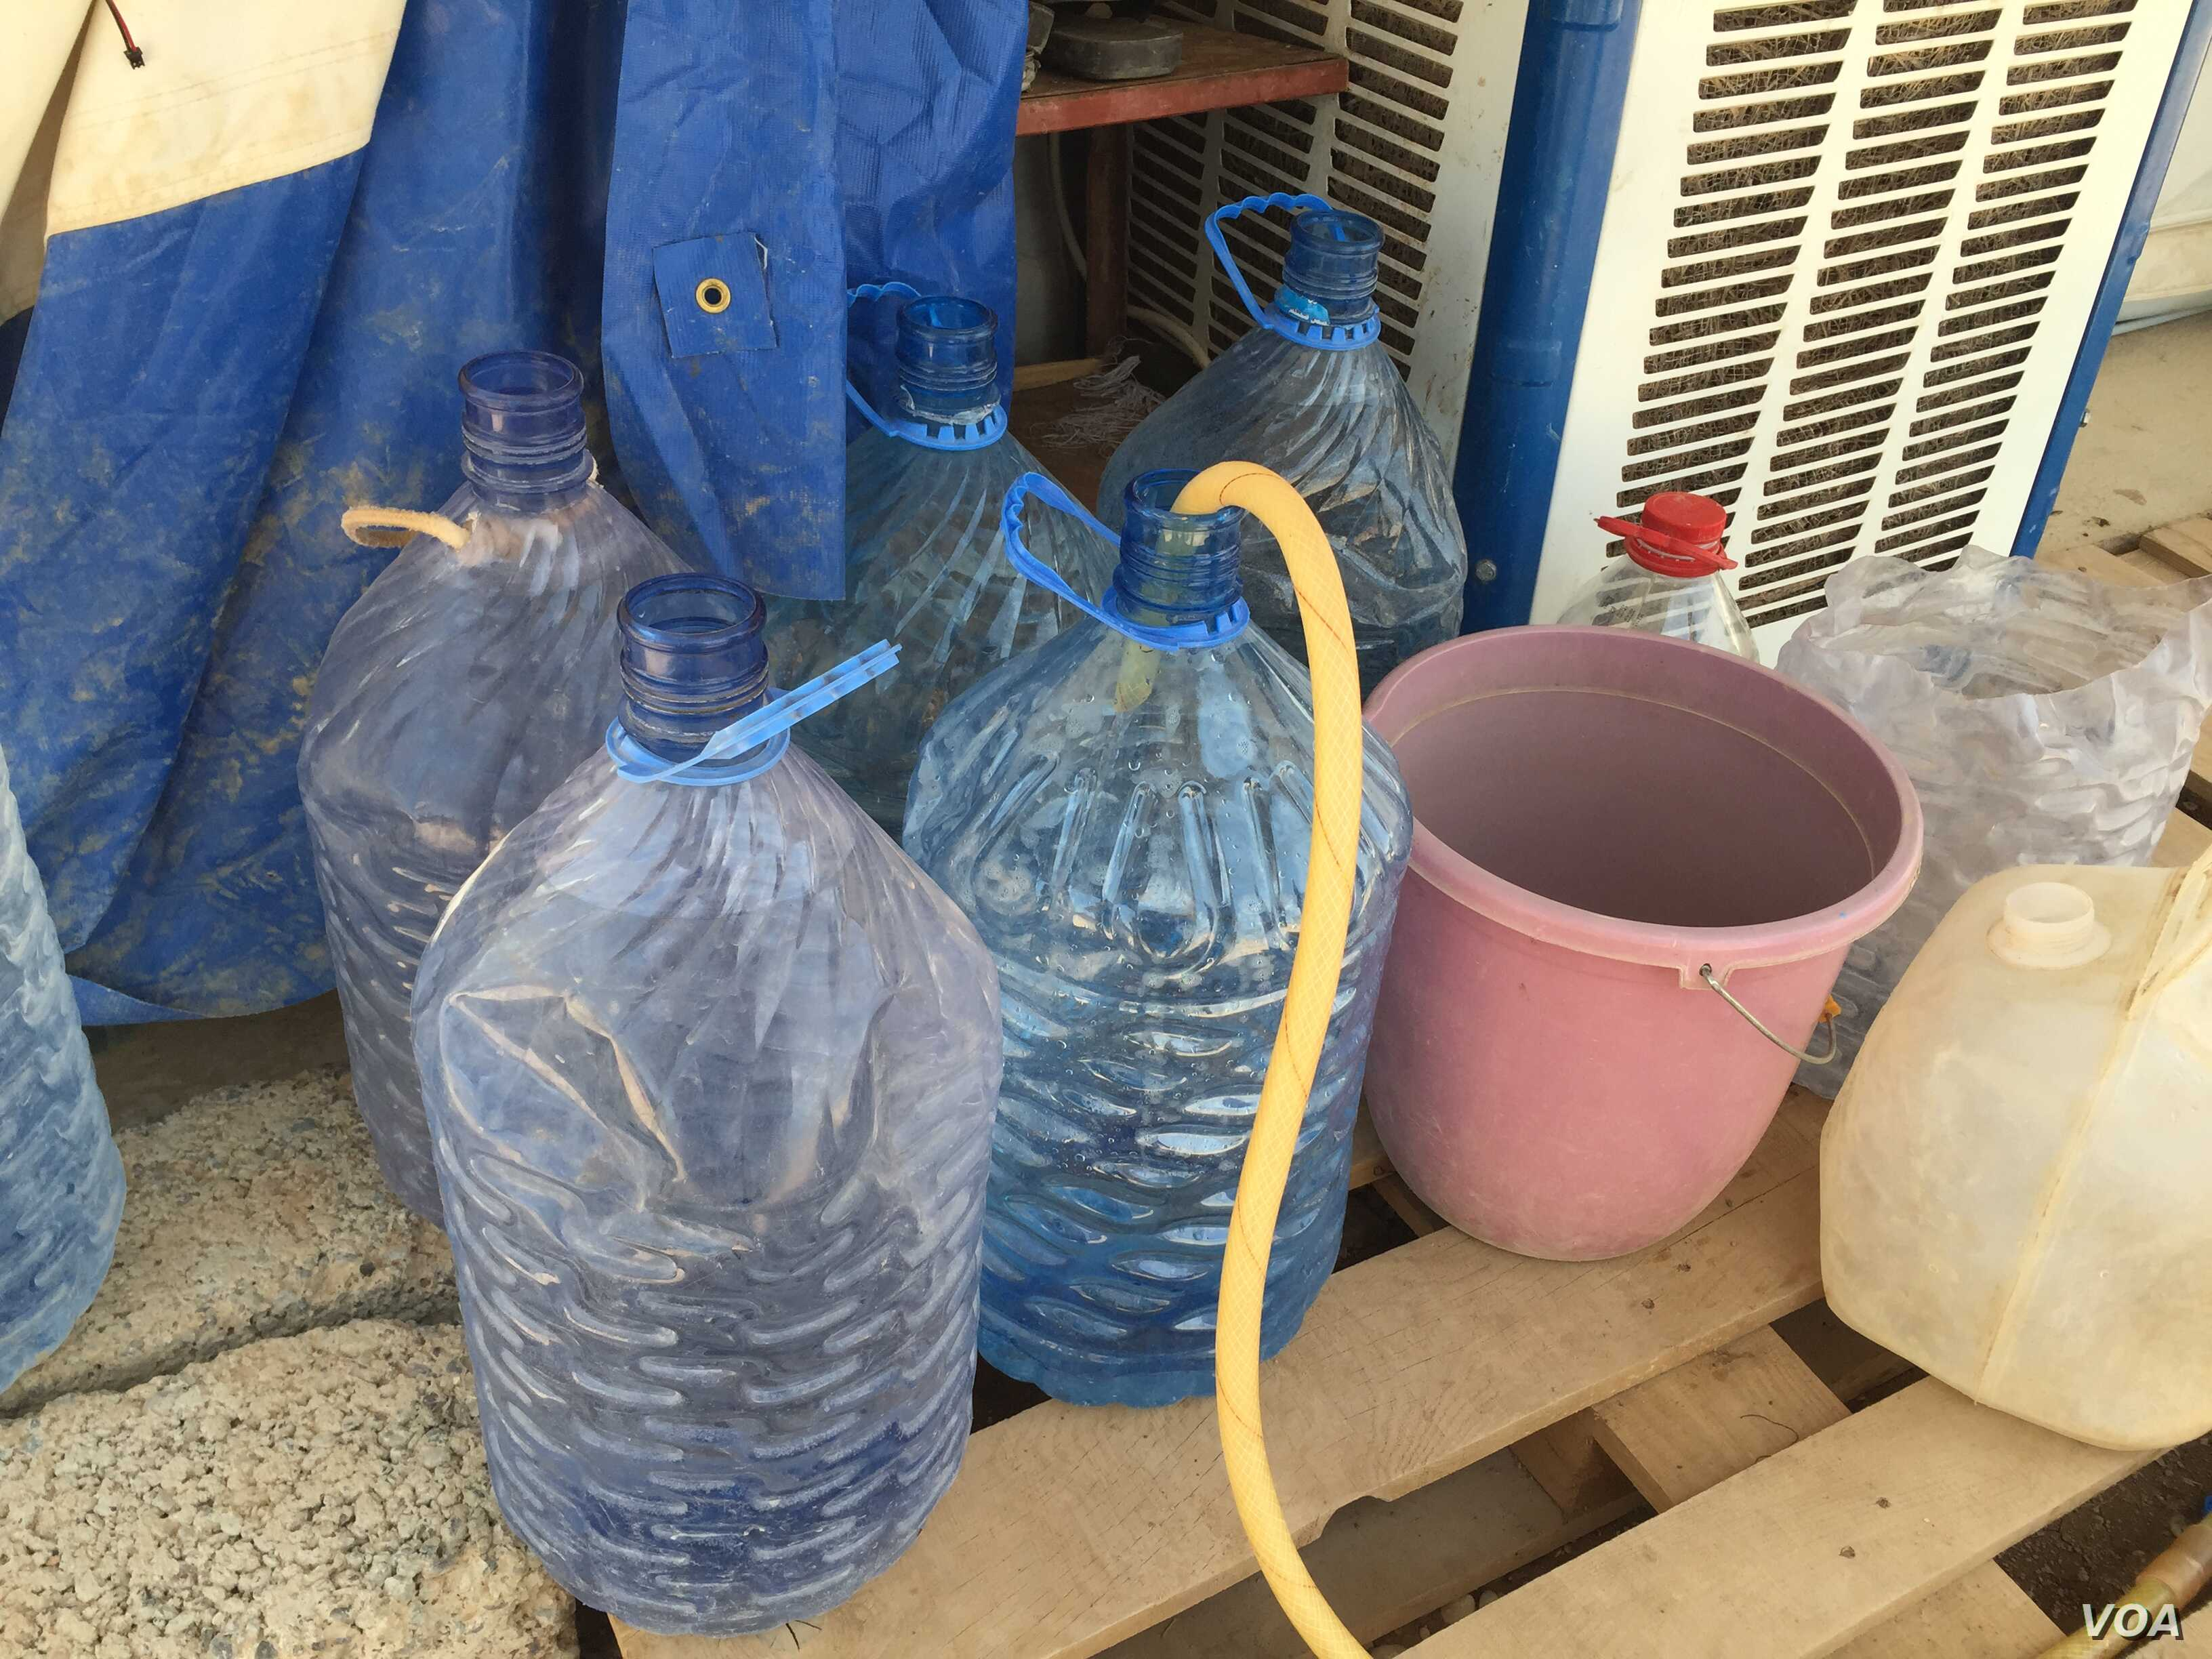 """Filling up water bottles in the Baharka camp on the outskirts of Irbil, in the Kurdistan region of Iraq. Considered a """"five-star"""" camp, Baharka houses some 4,000 people, half of whom are teenagers, Aug 5, 2015 (VOA photo - Sharon Behn)."""